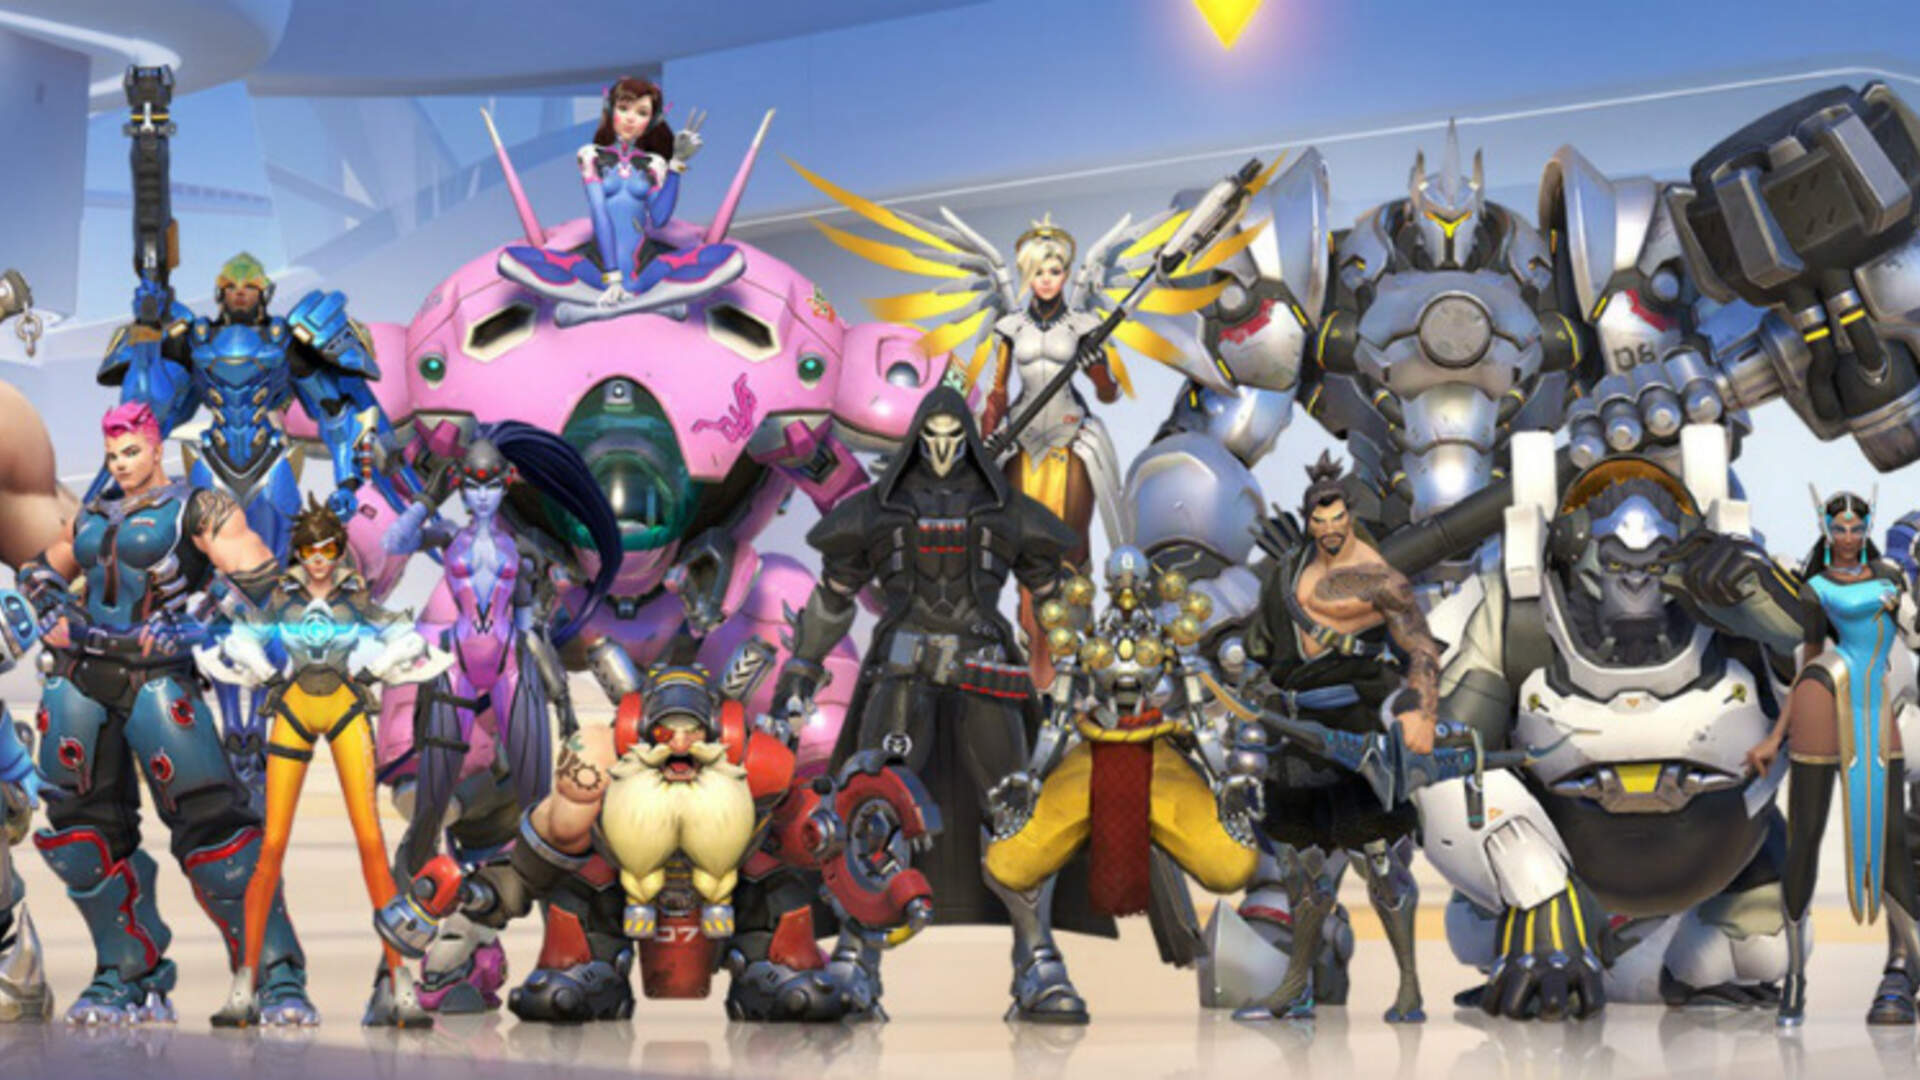 Pick up Overwatch for Half Price This Week